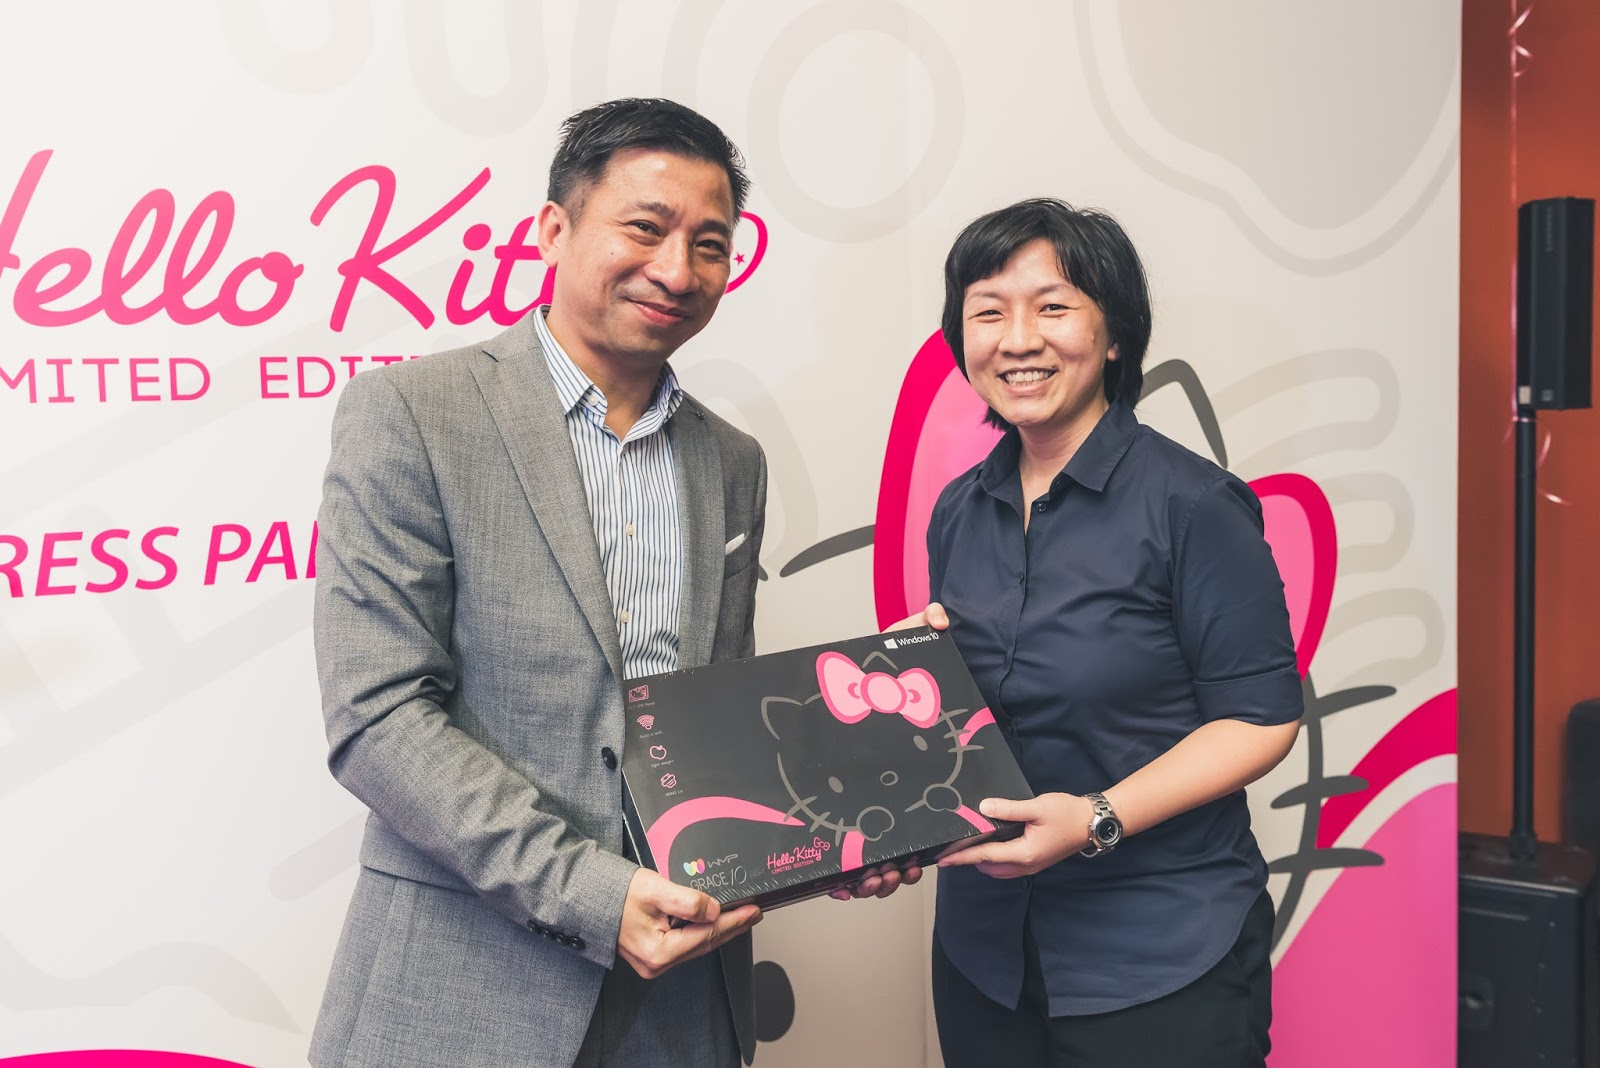 9dbb8be95 A lucky draw was held during the launch party and these are the two winners  who each walk away with the Grace 10 Light Hello Kitty Limited Edition  Windows ...